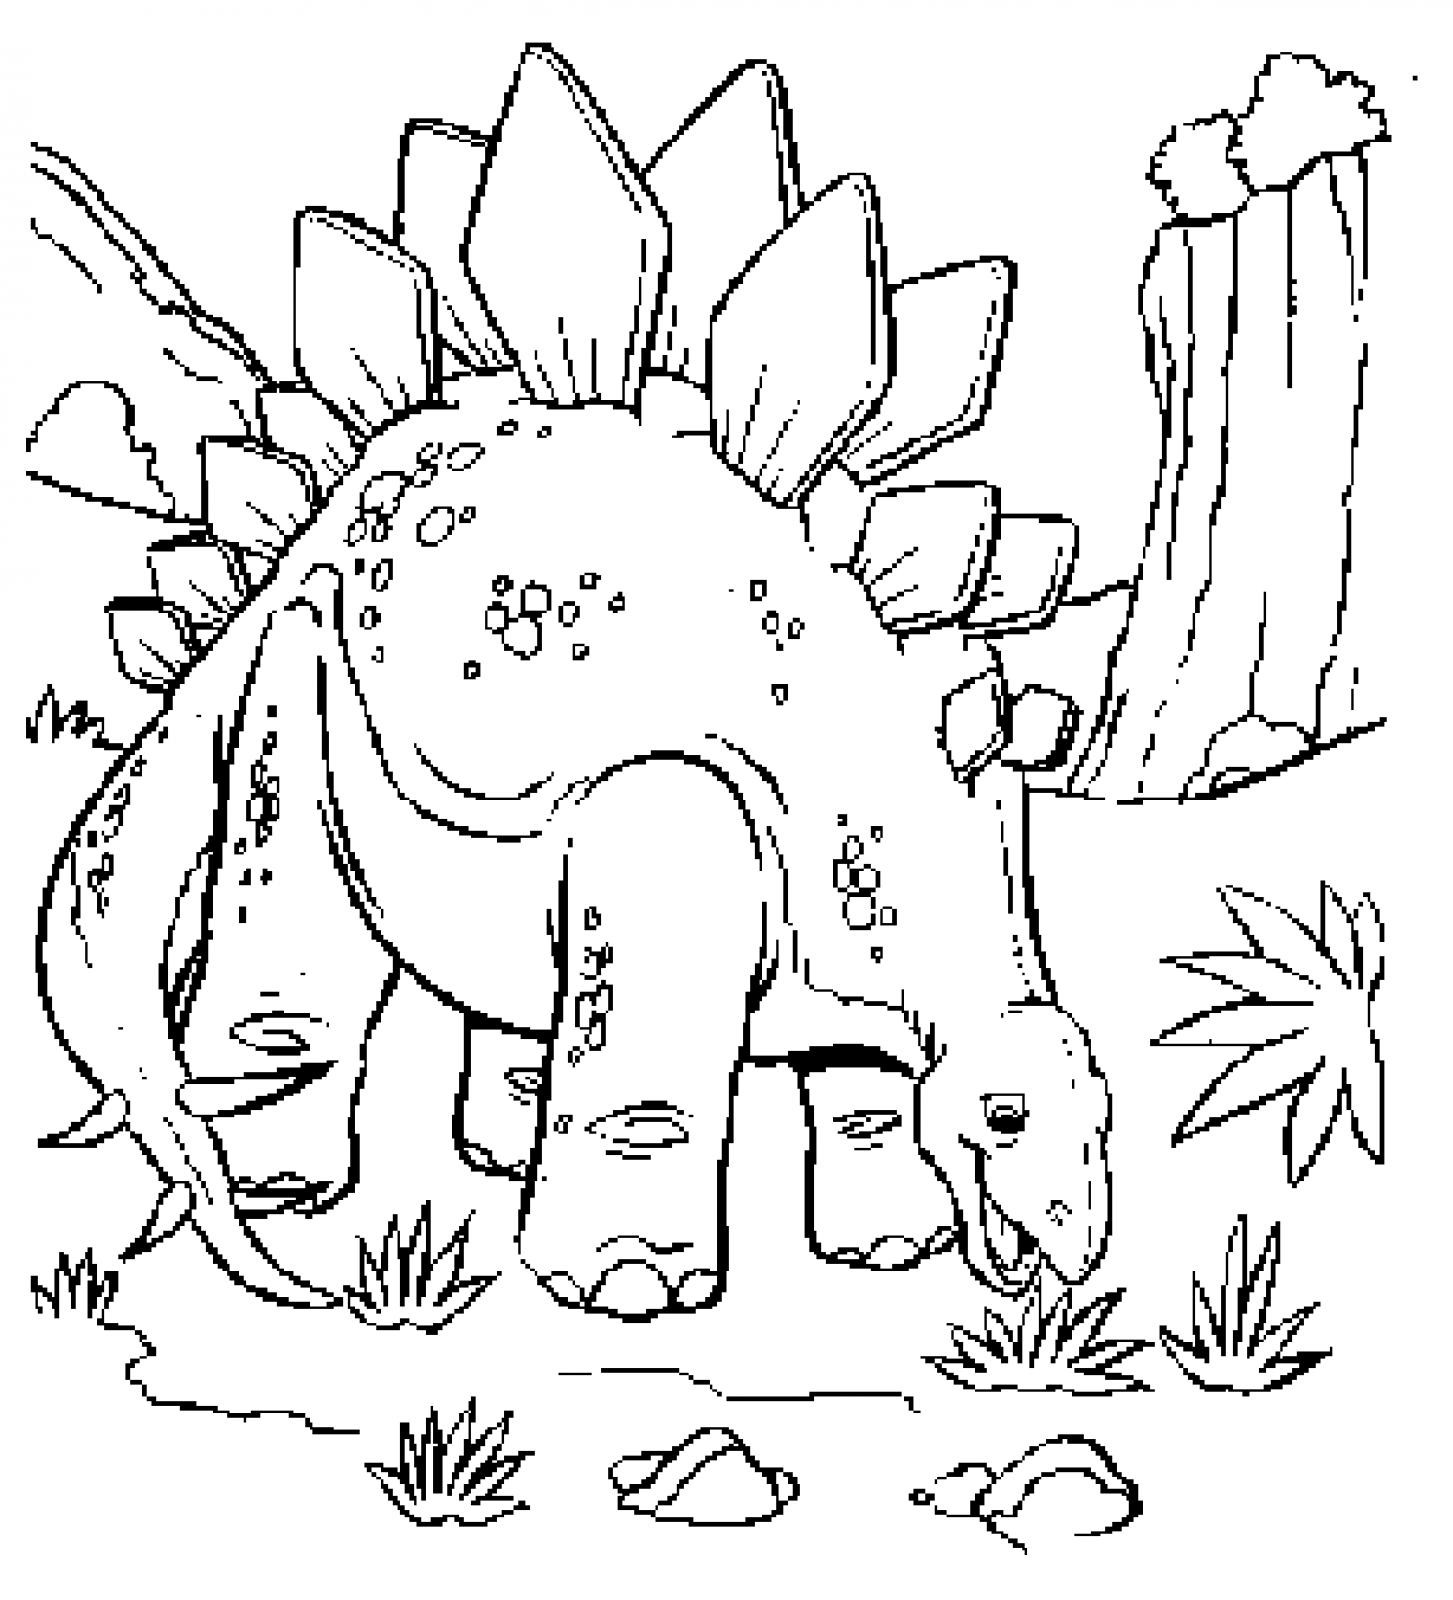 free-online-dinosaurs-coloring-pages-of-free-online-dinosaurs-coloring-pages Free Online Dinosaurs Coloring Pages Dinosaurs